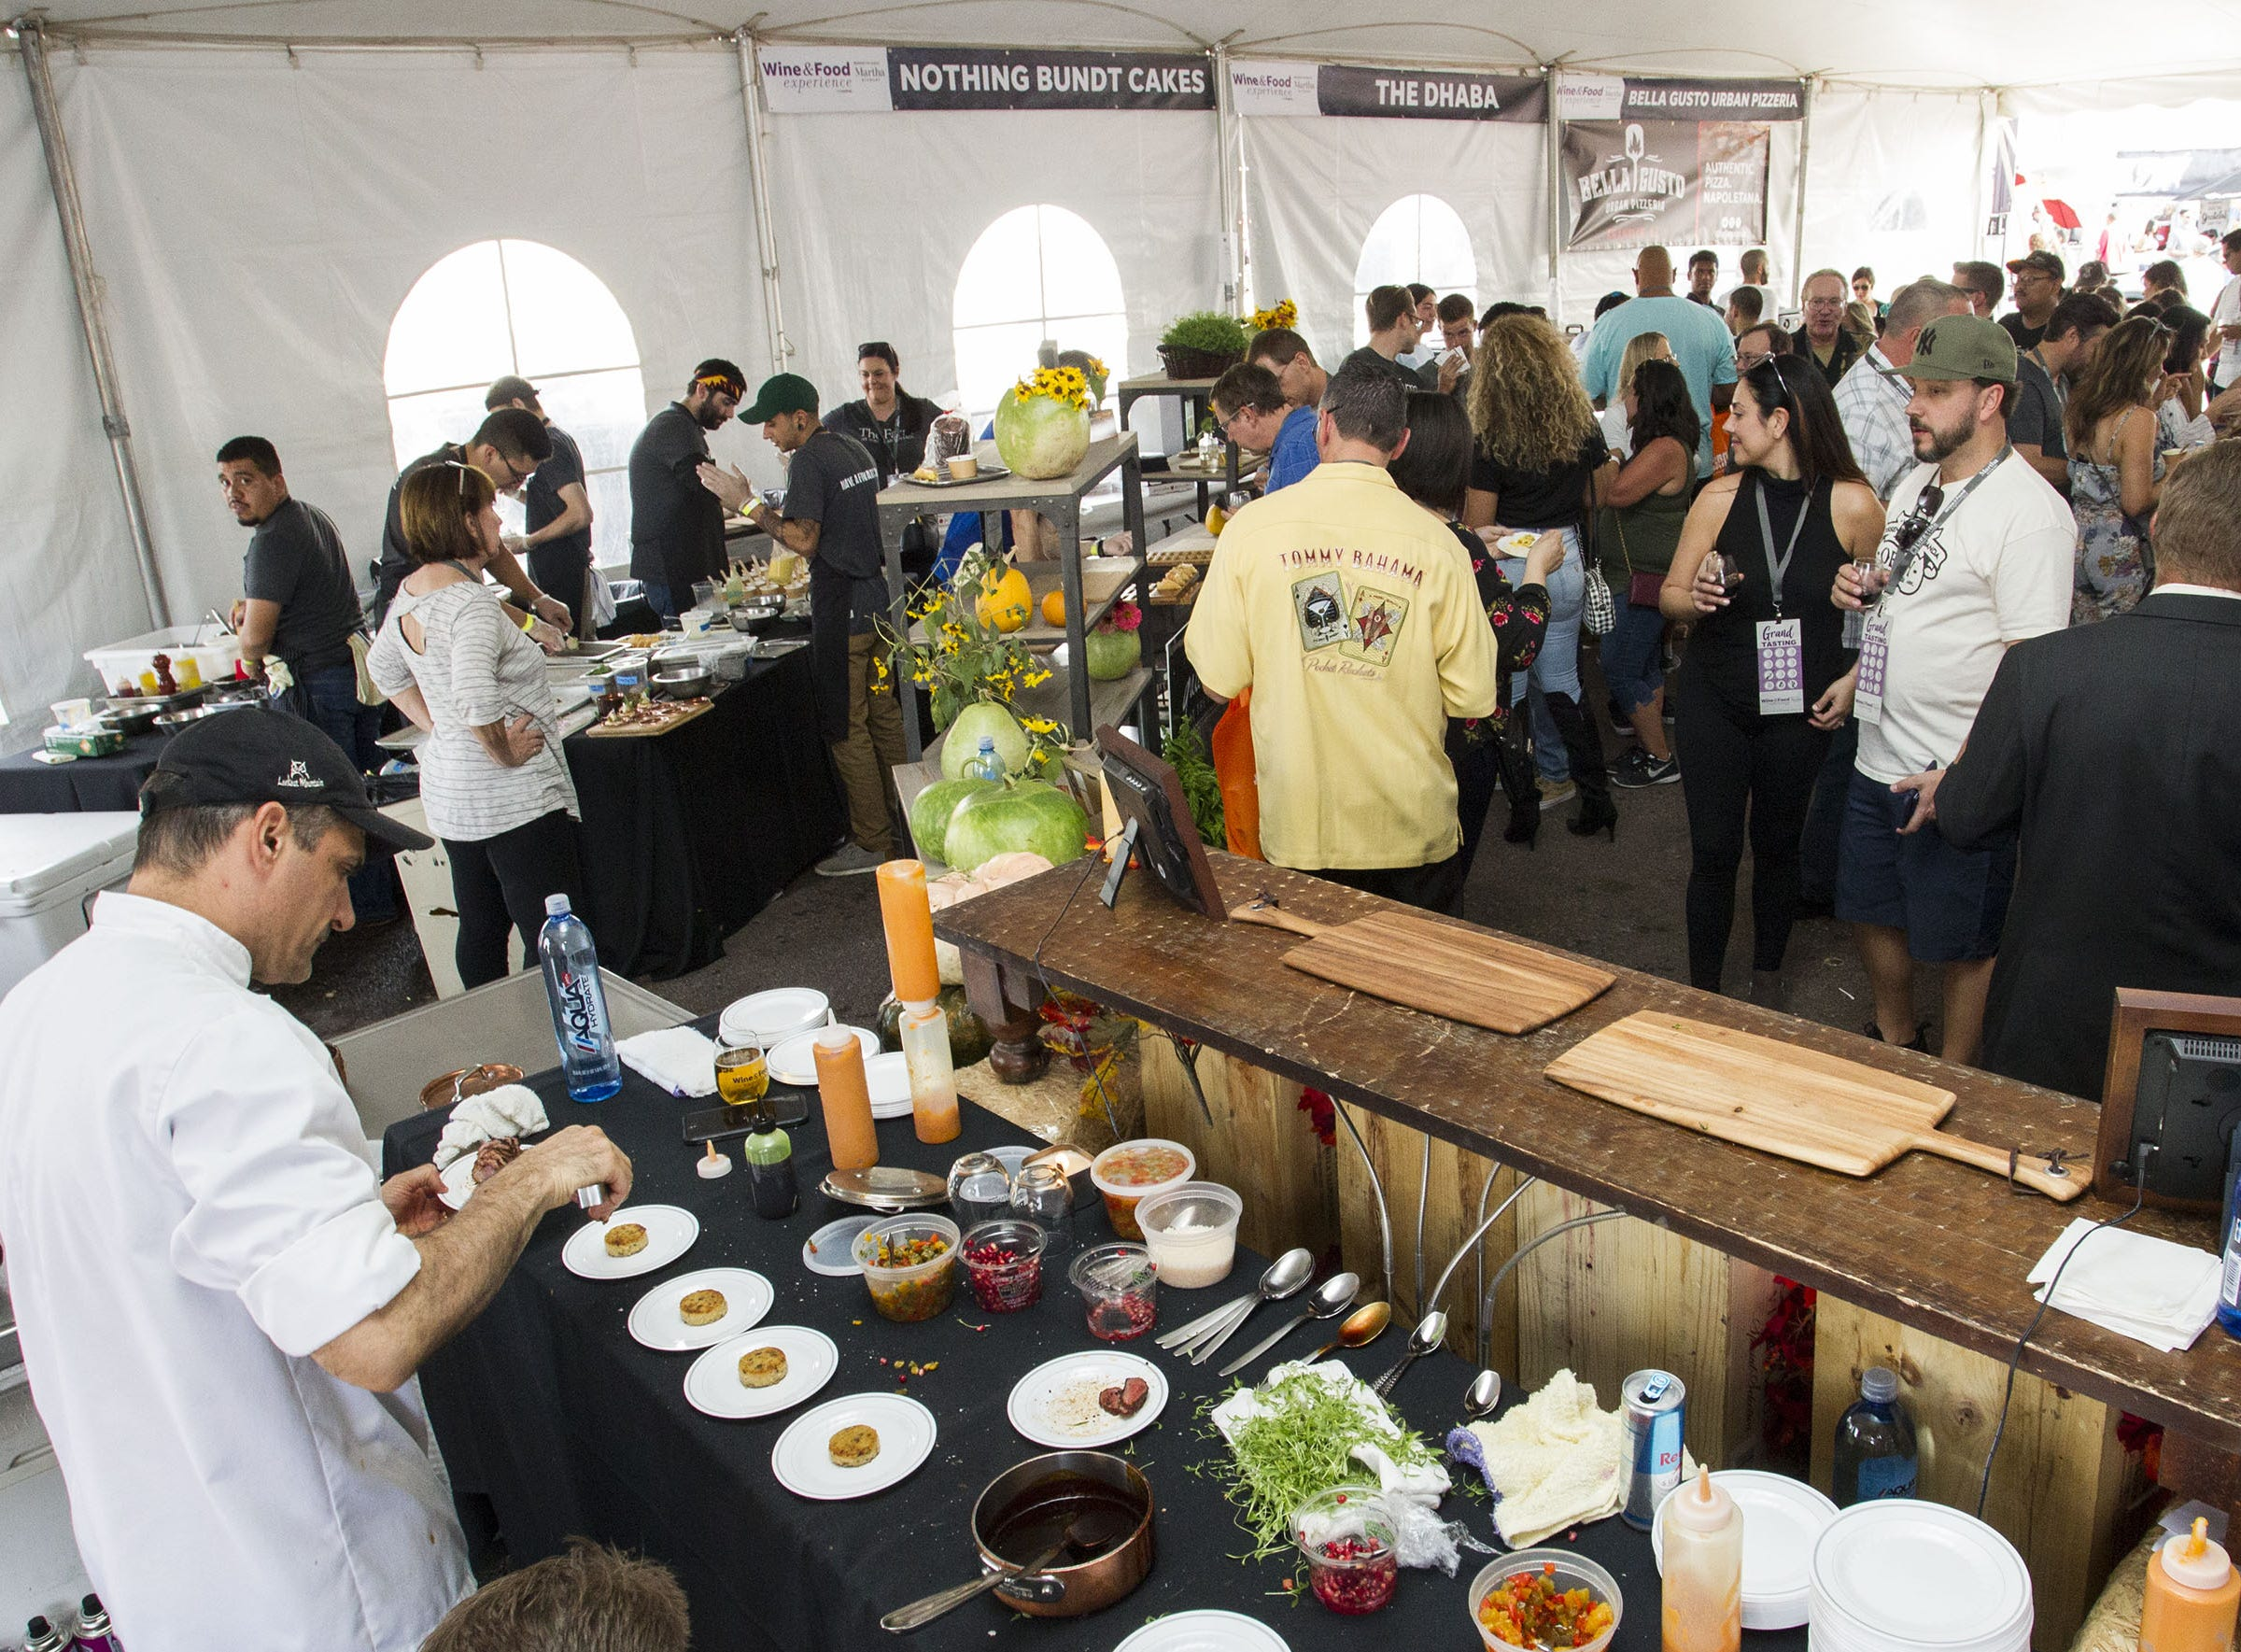 Food is prepared as Wine & Food lovers wait for samples during the azcentral Wine & Food Experience at WestWorld of Scottsdale, Sunday, Nov. 4, 2018.